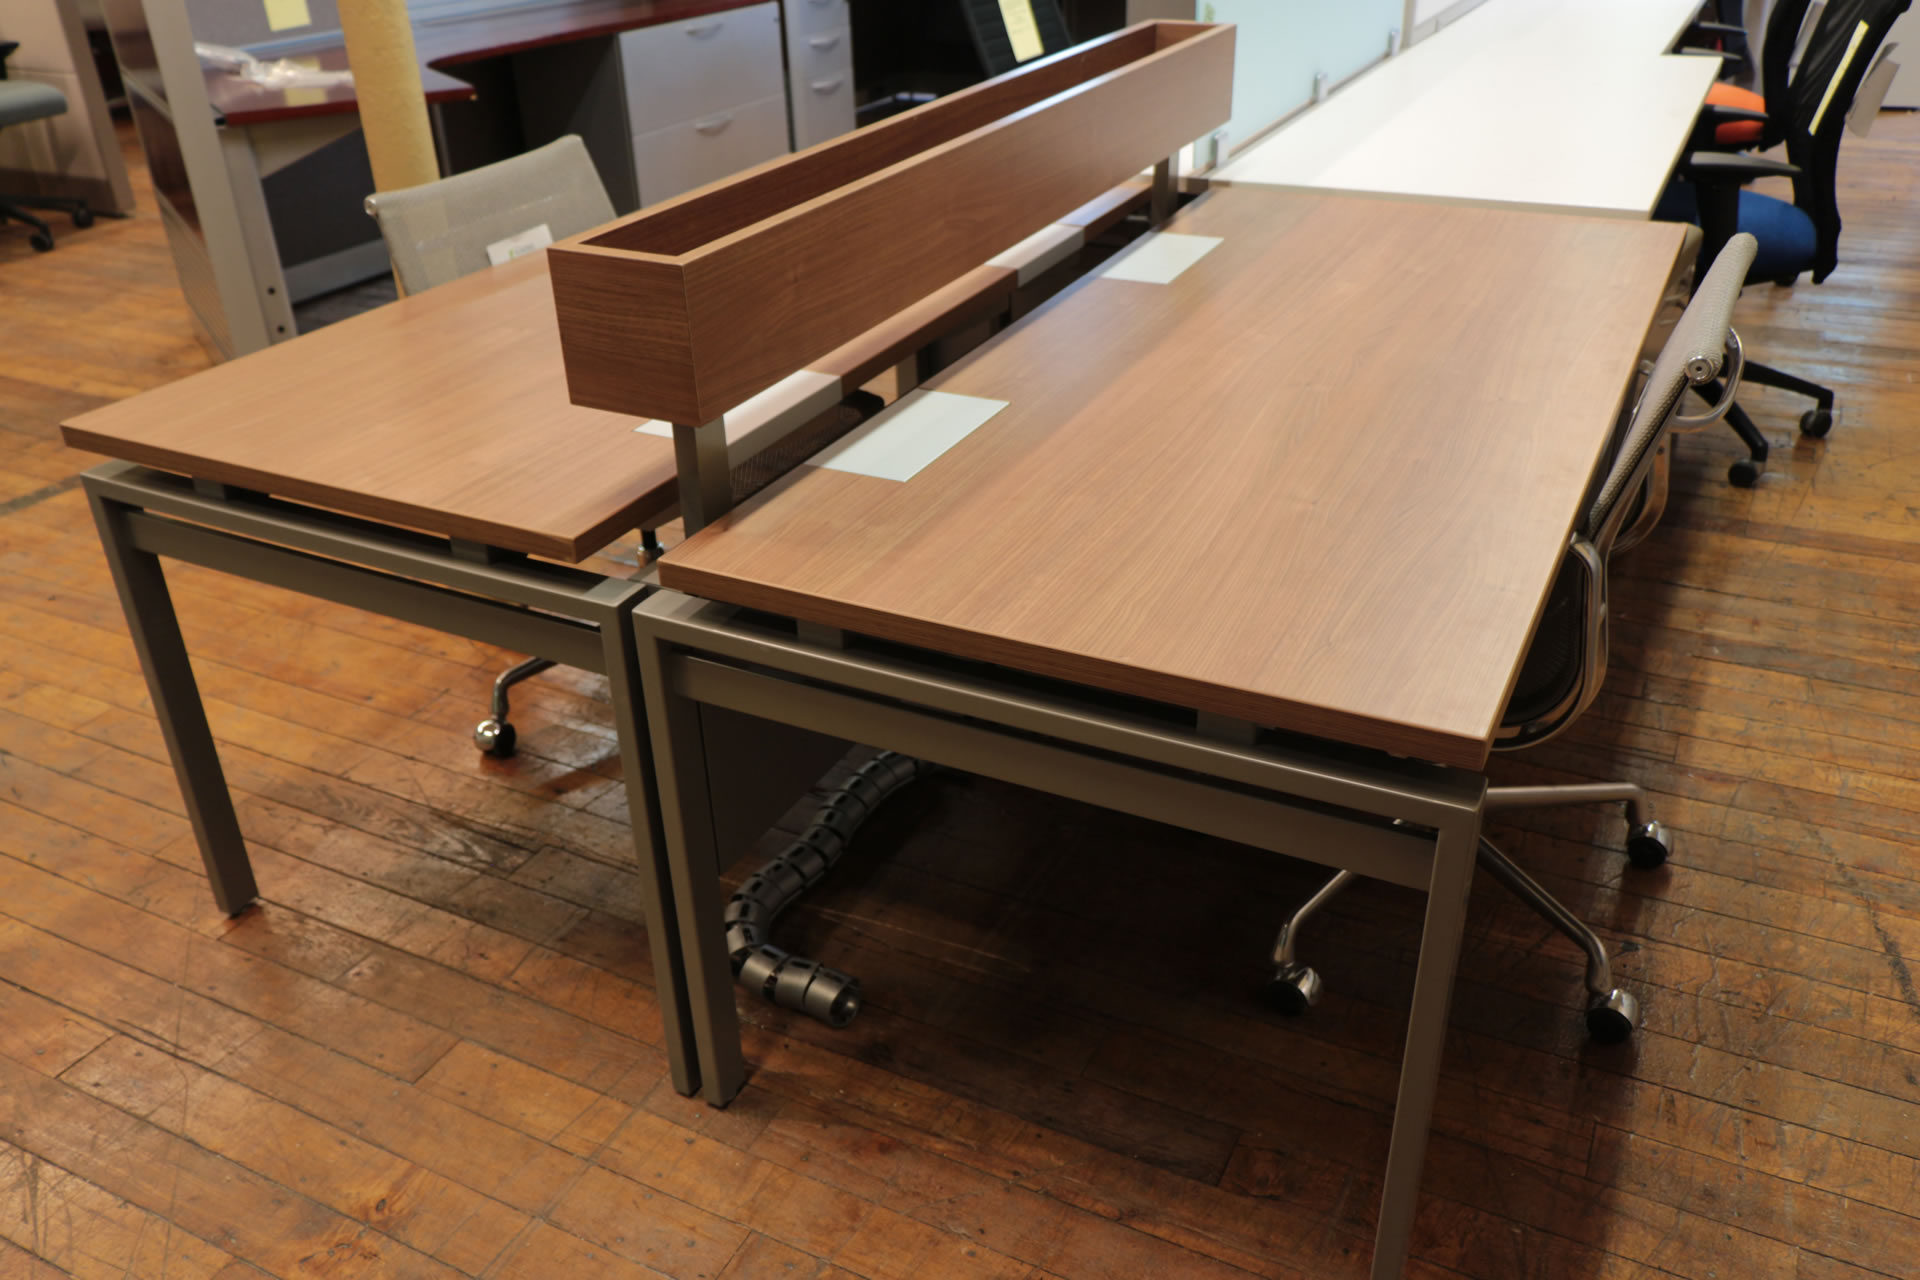 Inscape Benching Systems – Walnut with Silver Metallic Trim